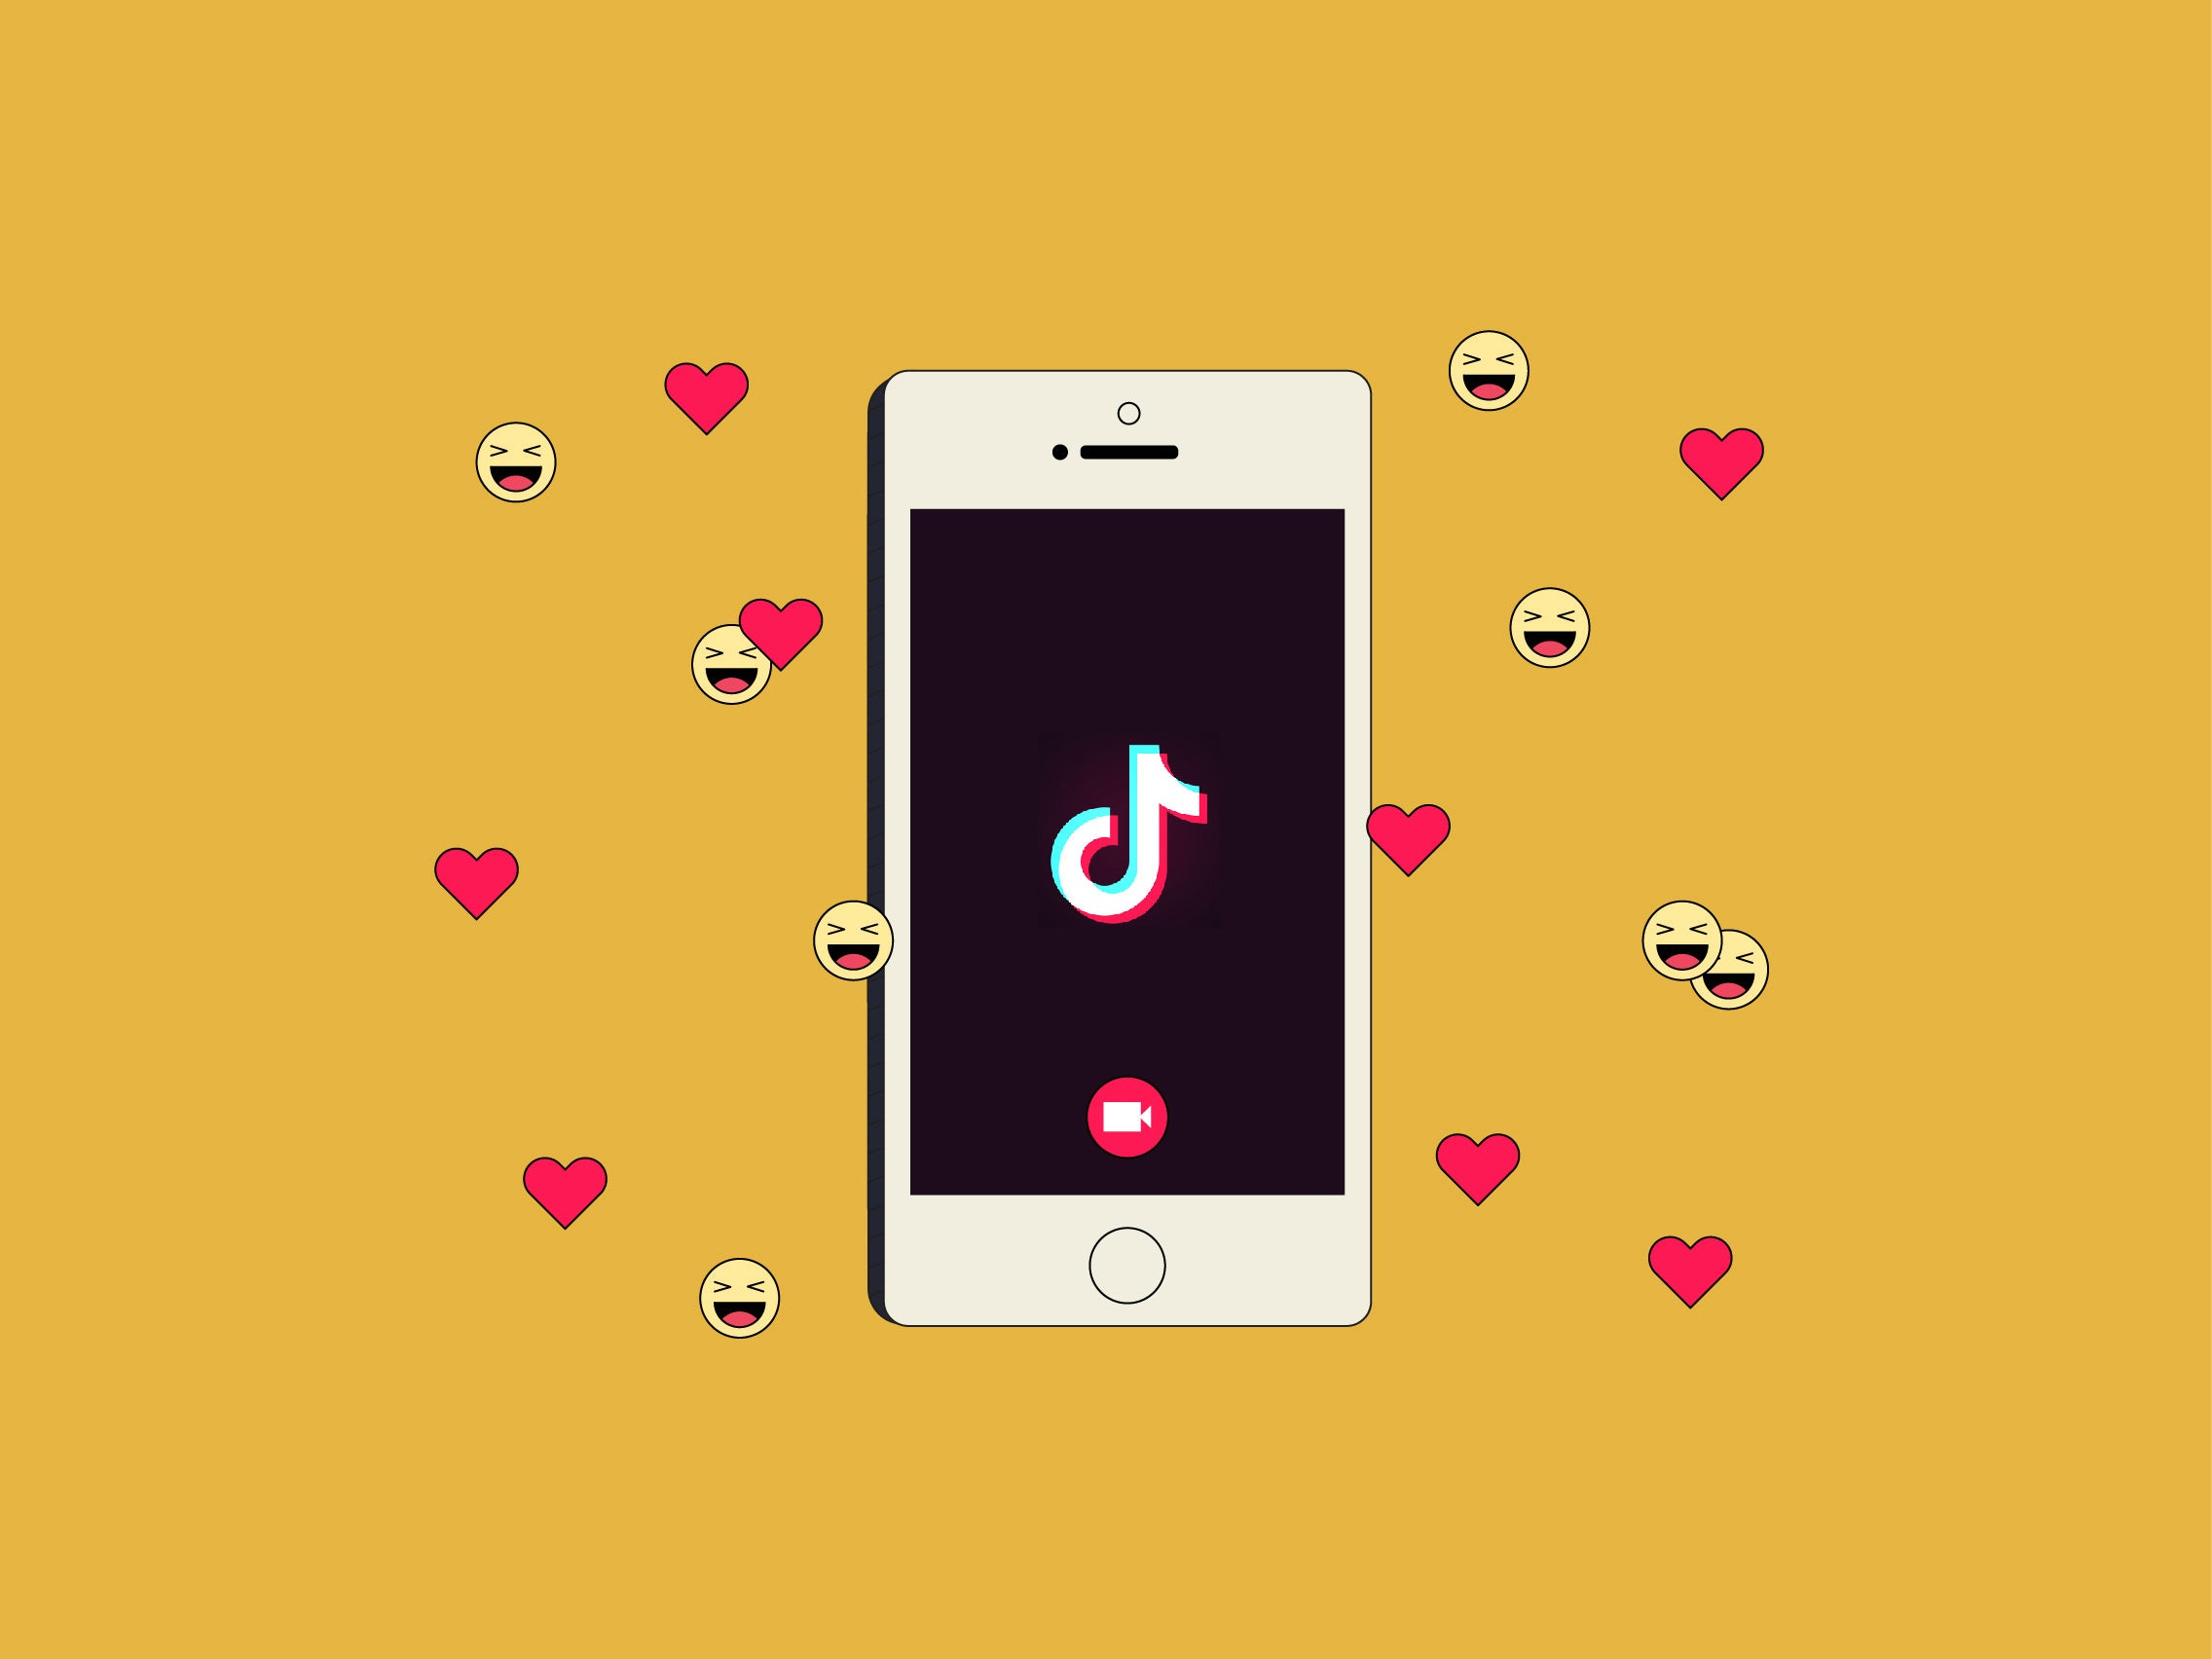 Top 5 FAQs for Getting More Likes and Views on TikTok